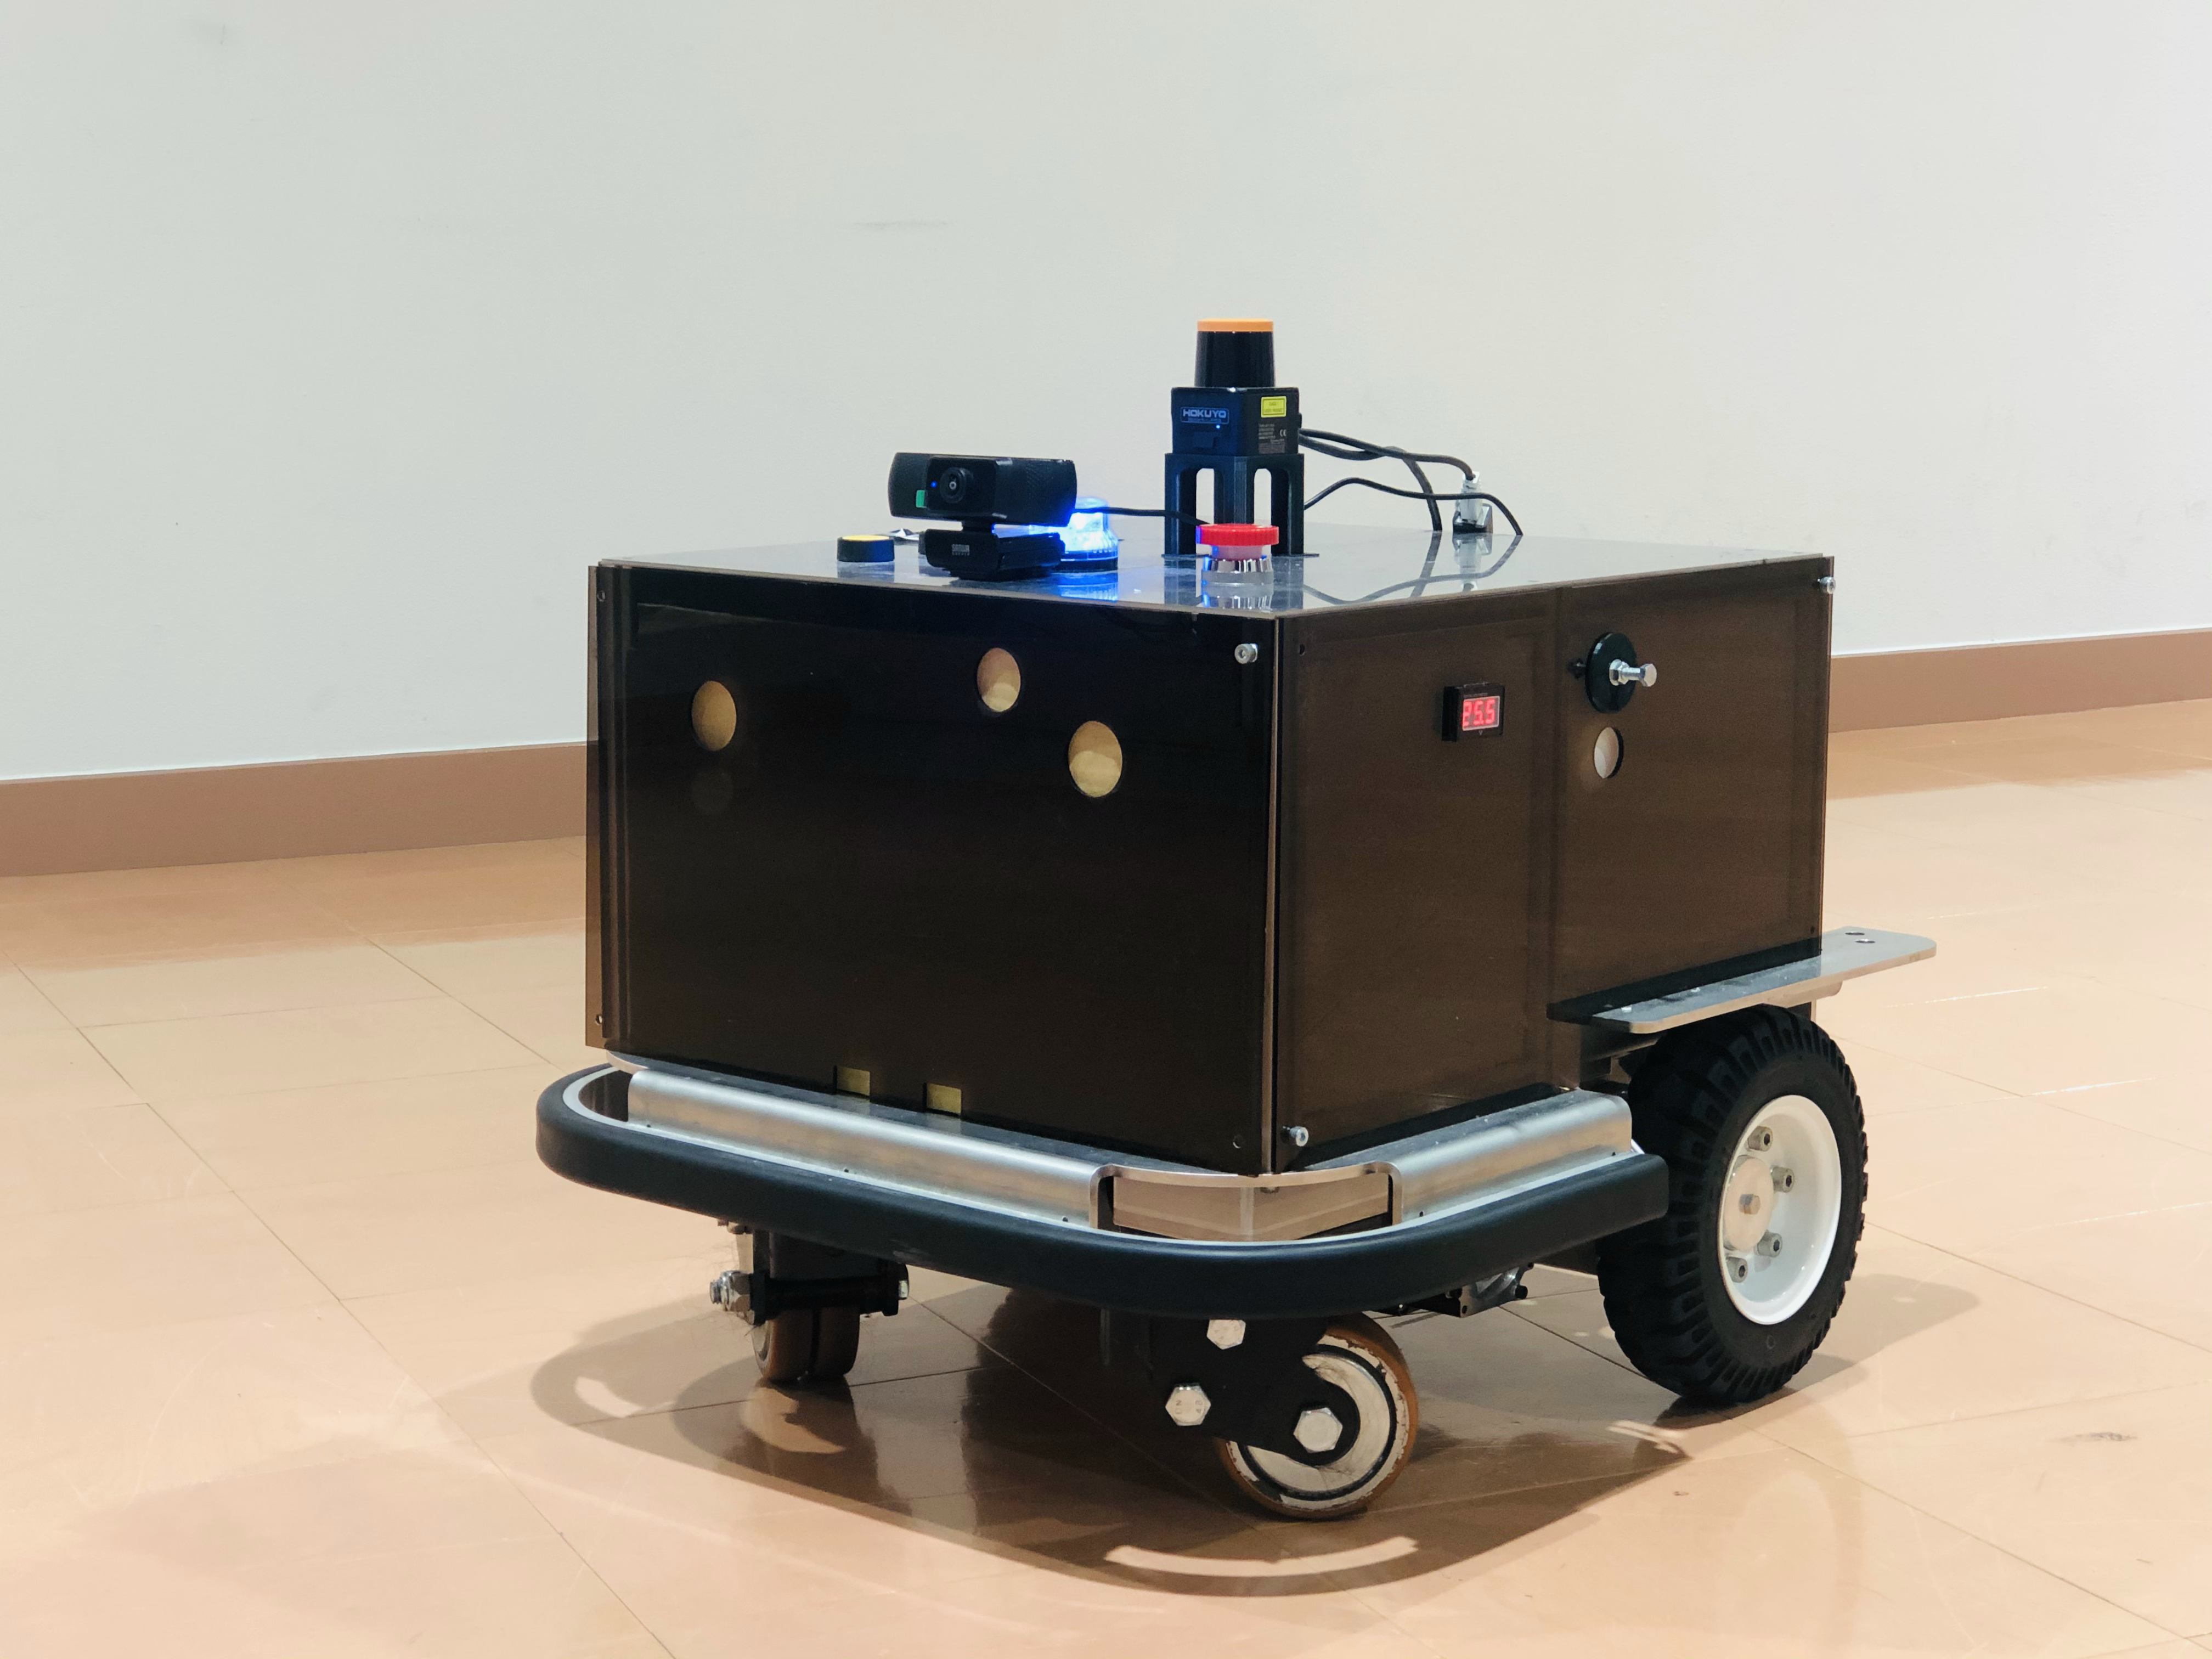 AI Automatic Transport Robot